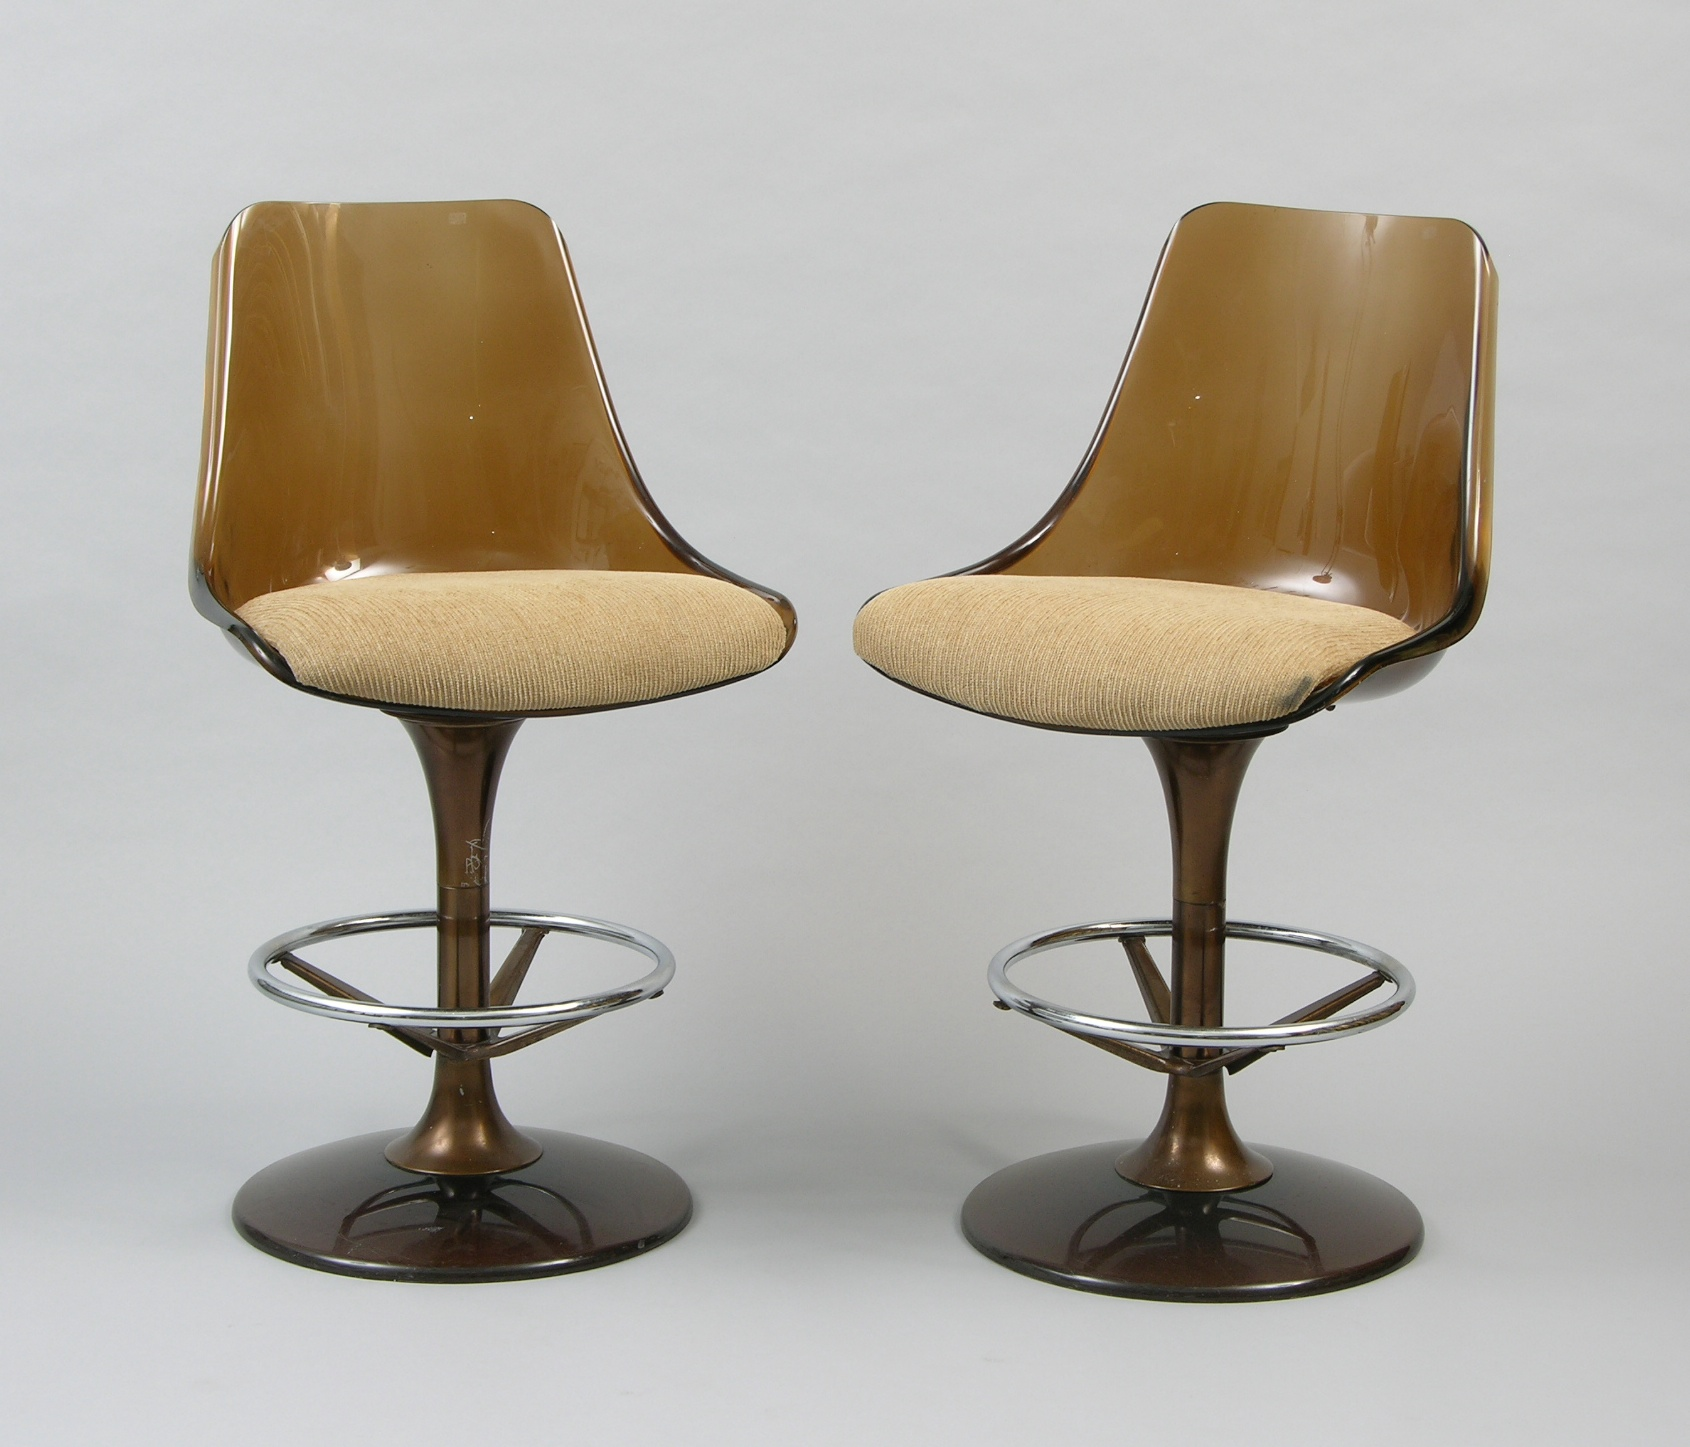 two lucite barstools by chromcraft